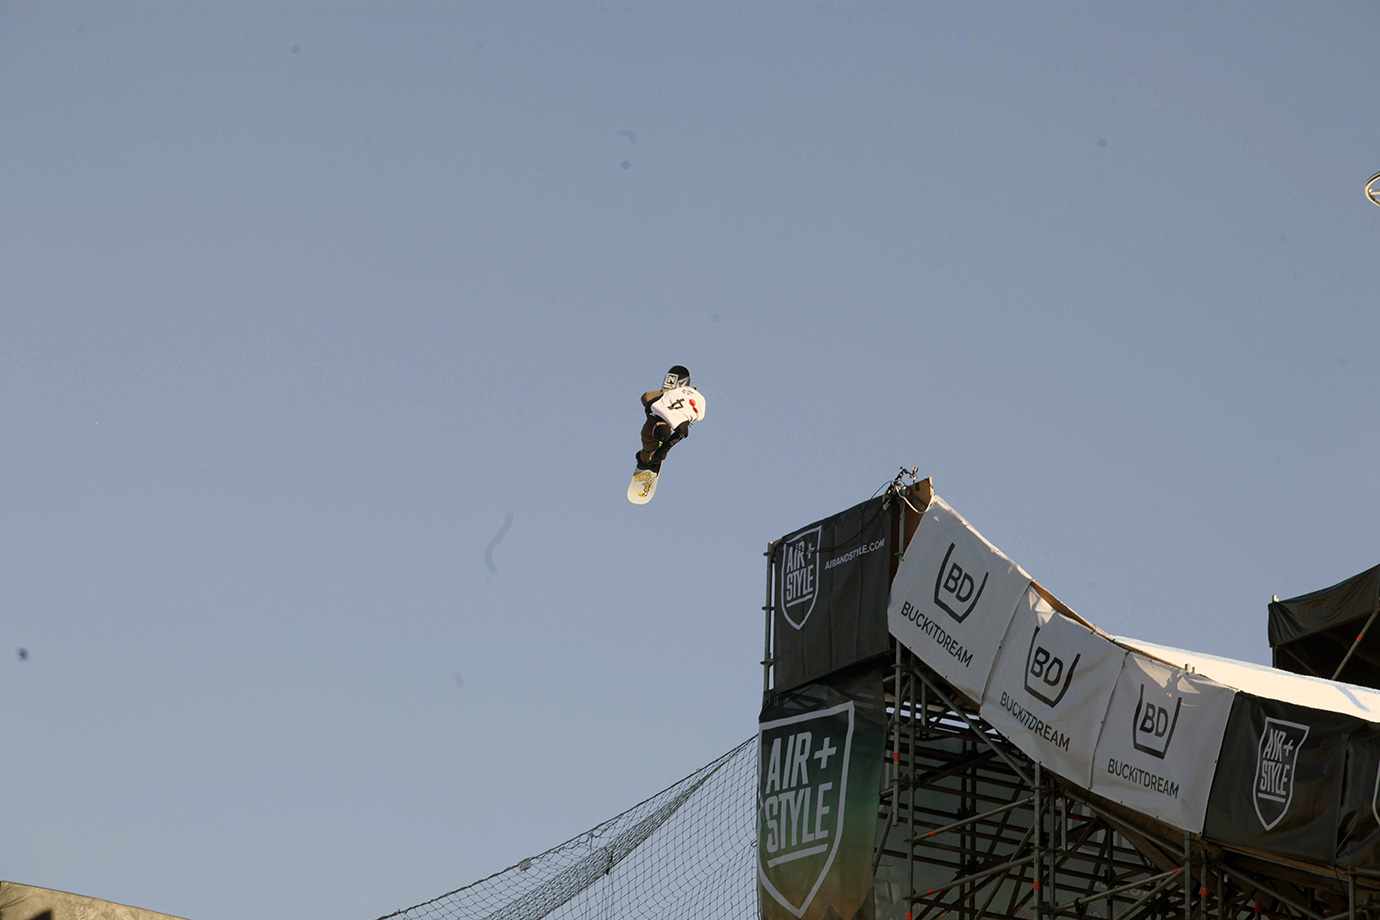 Torgeir Bergrem of Norway sails the gap between the launch point and the landing pad of the 160-foot big air jump during practice for the finals elimination rounds.